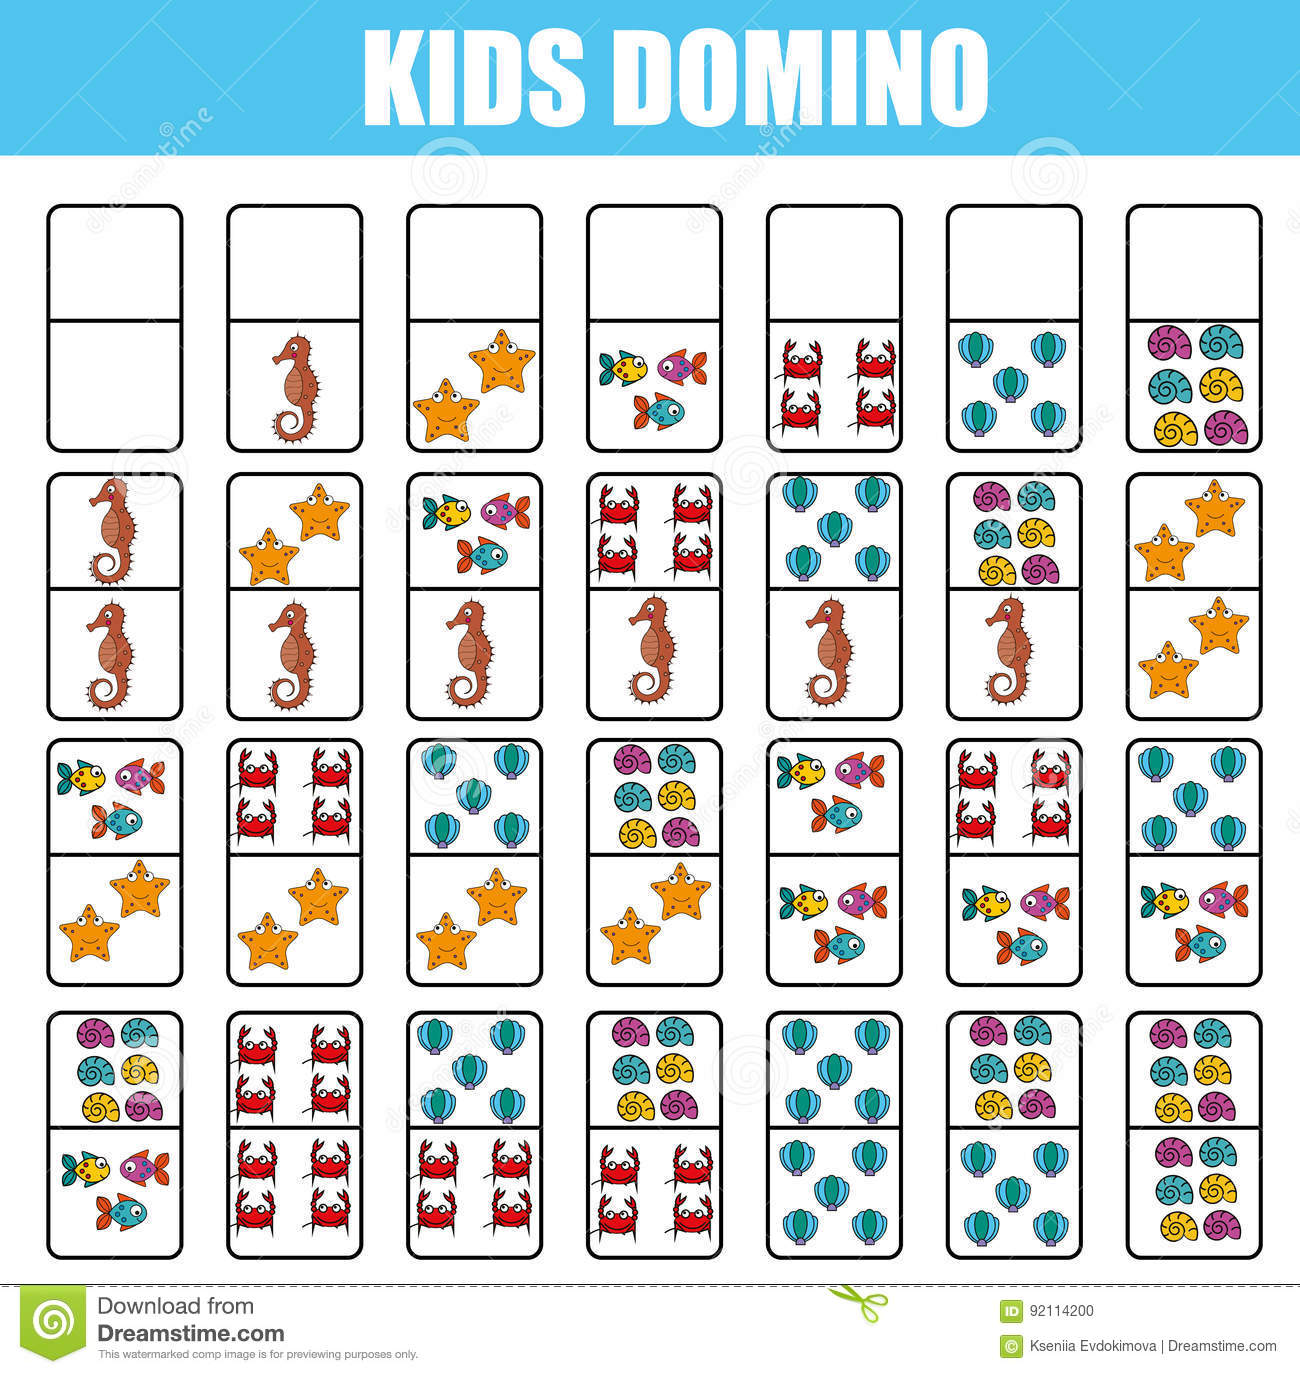 Domino For Kids Children Educational Game Printable